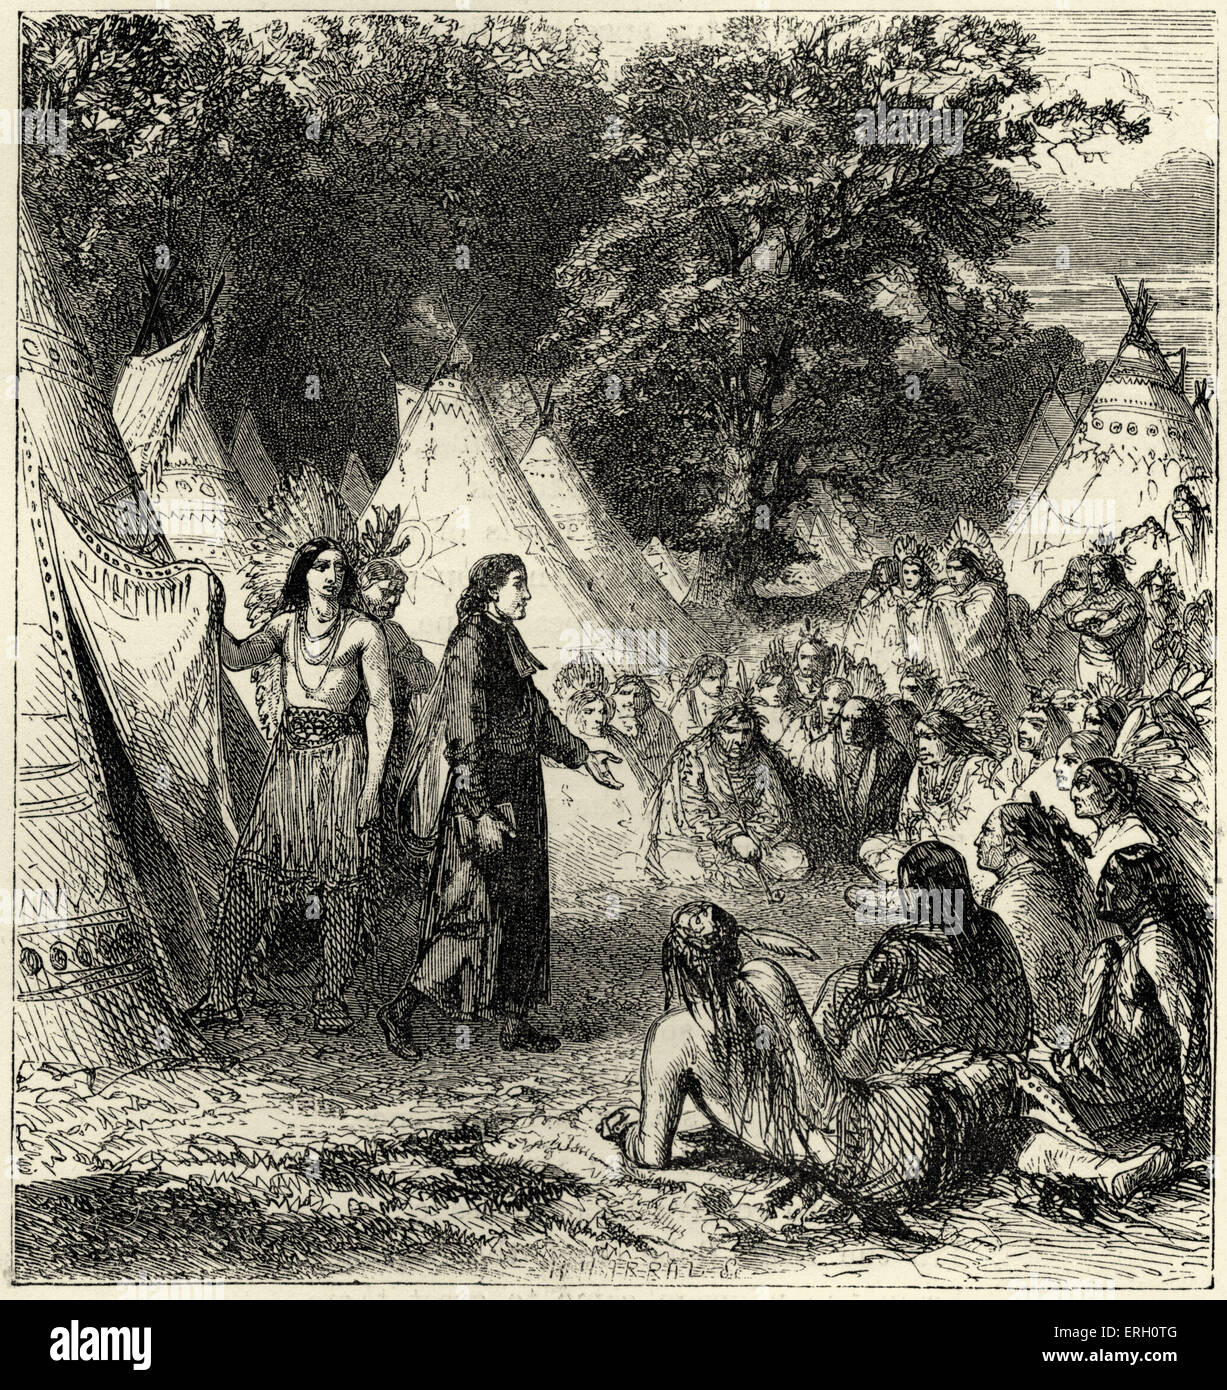 song of hiawatha by henry wadsworth longfellow hiawatha s stock  song of hiawatha by henry wadsworth longfellow hiawatha s departure christian missionary arrives at hiawatha s encampment